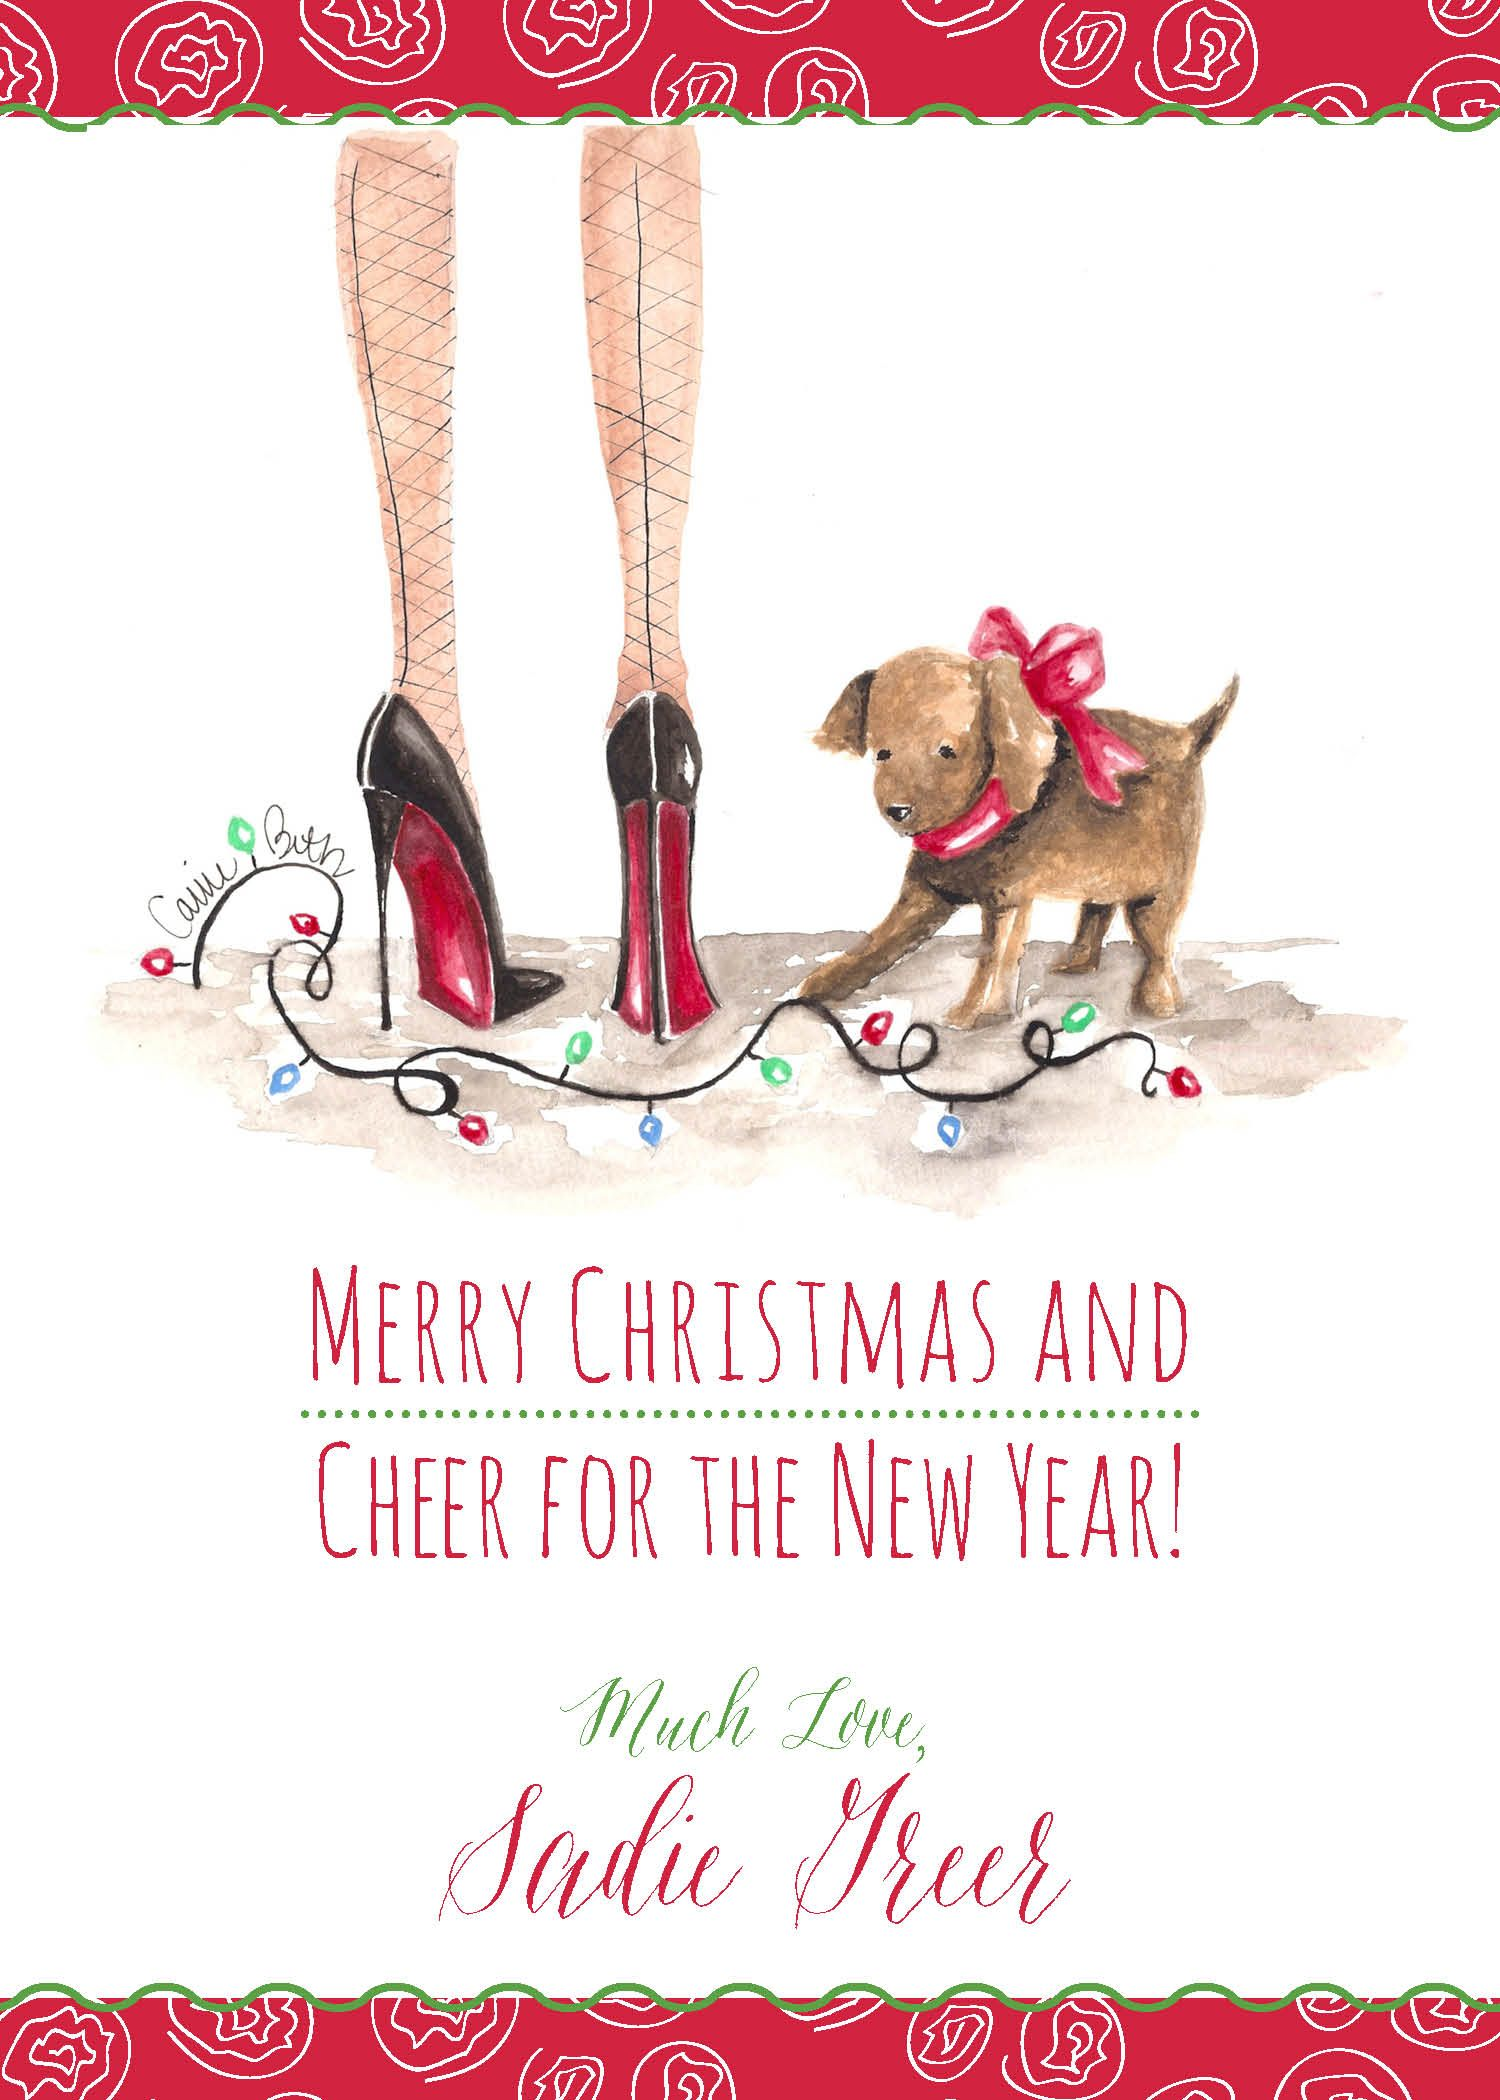 Puppy's First Christmas — Carrie Beth www.carriebethtaylor.com Fashion Illustration Stationery